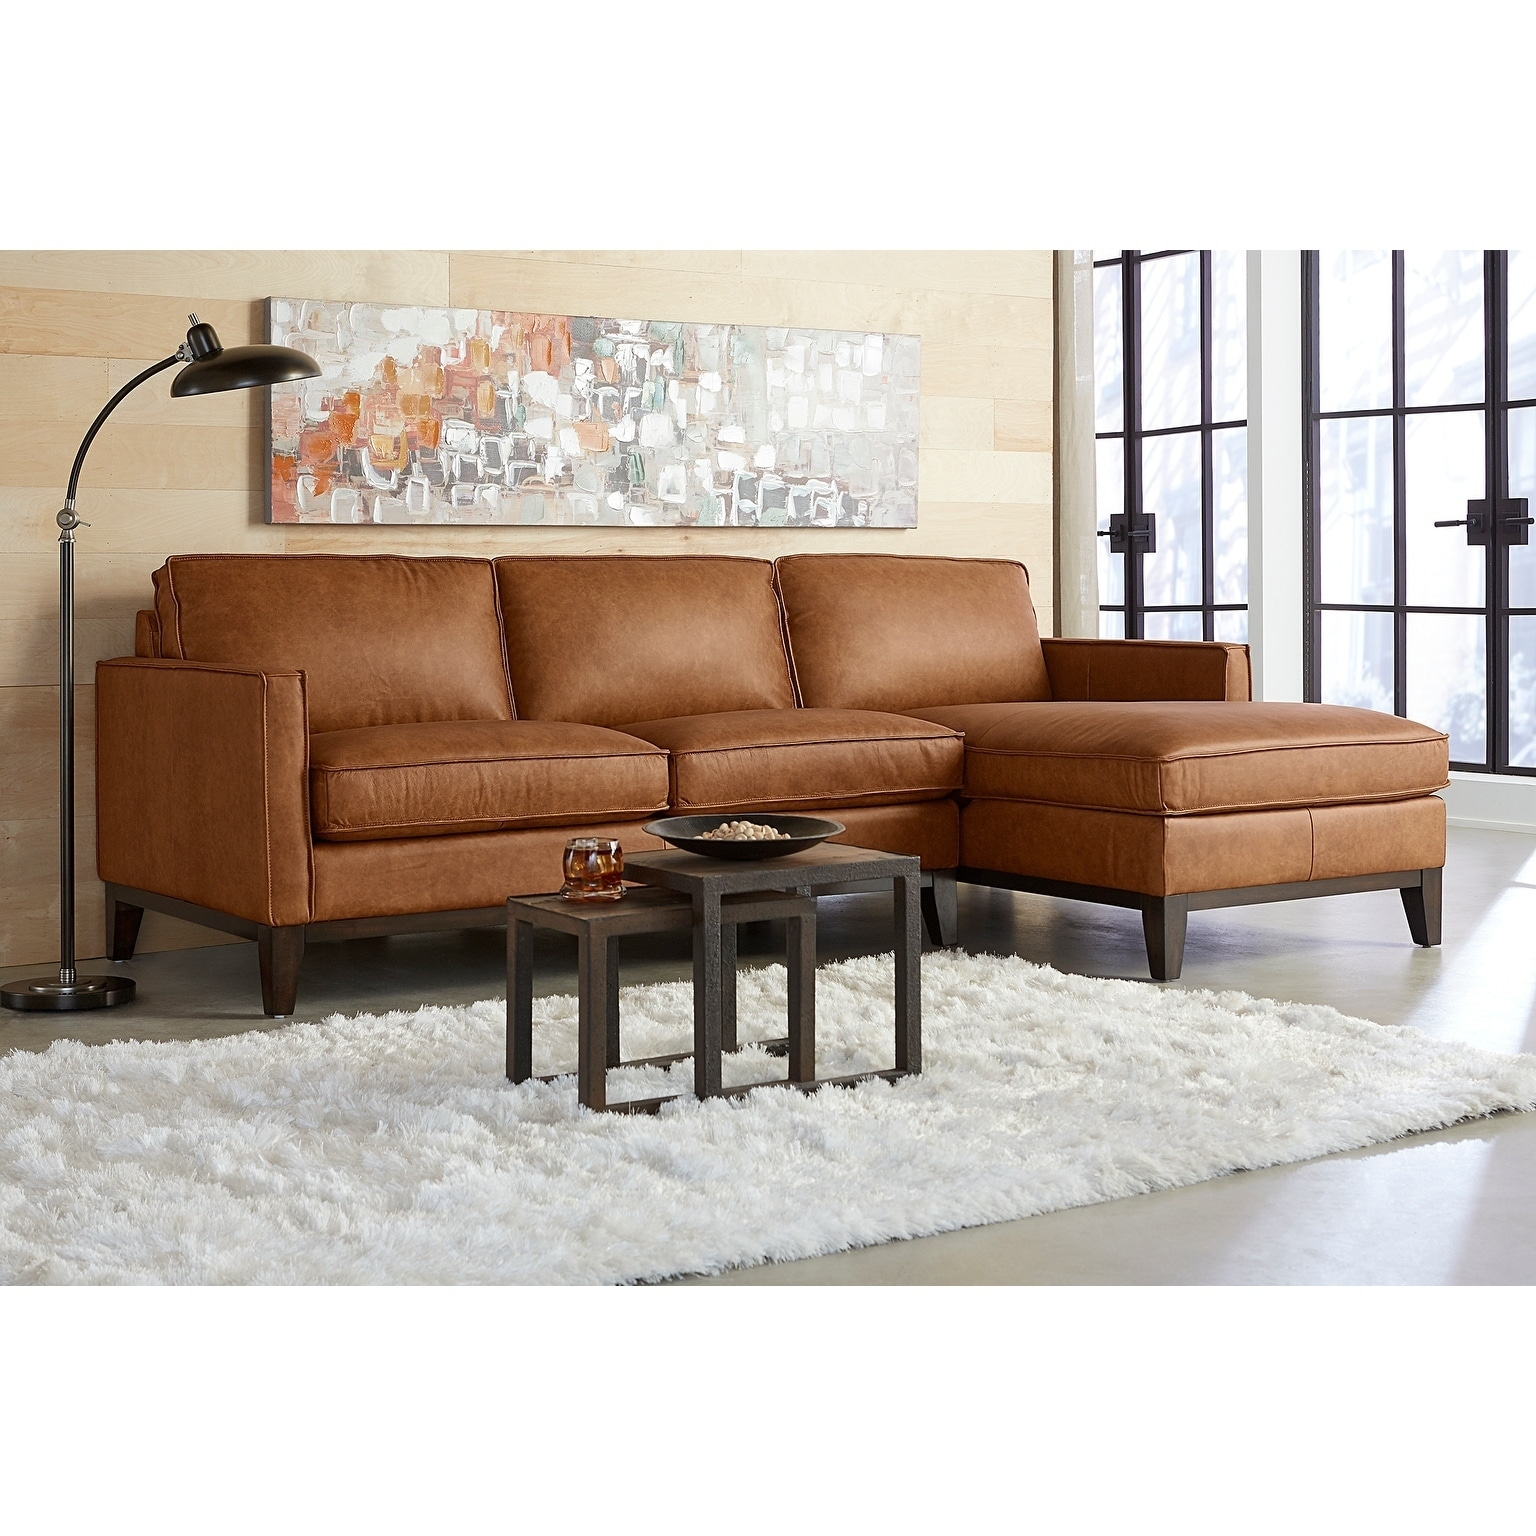 Wondrous Olney Leather Sofa Chaise Right Arm Facing With Wood Base Beatyapartments Chair Design Images Beatyapartmentscom